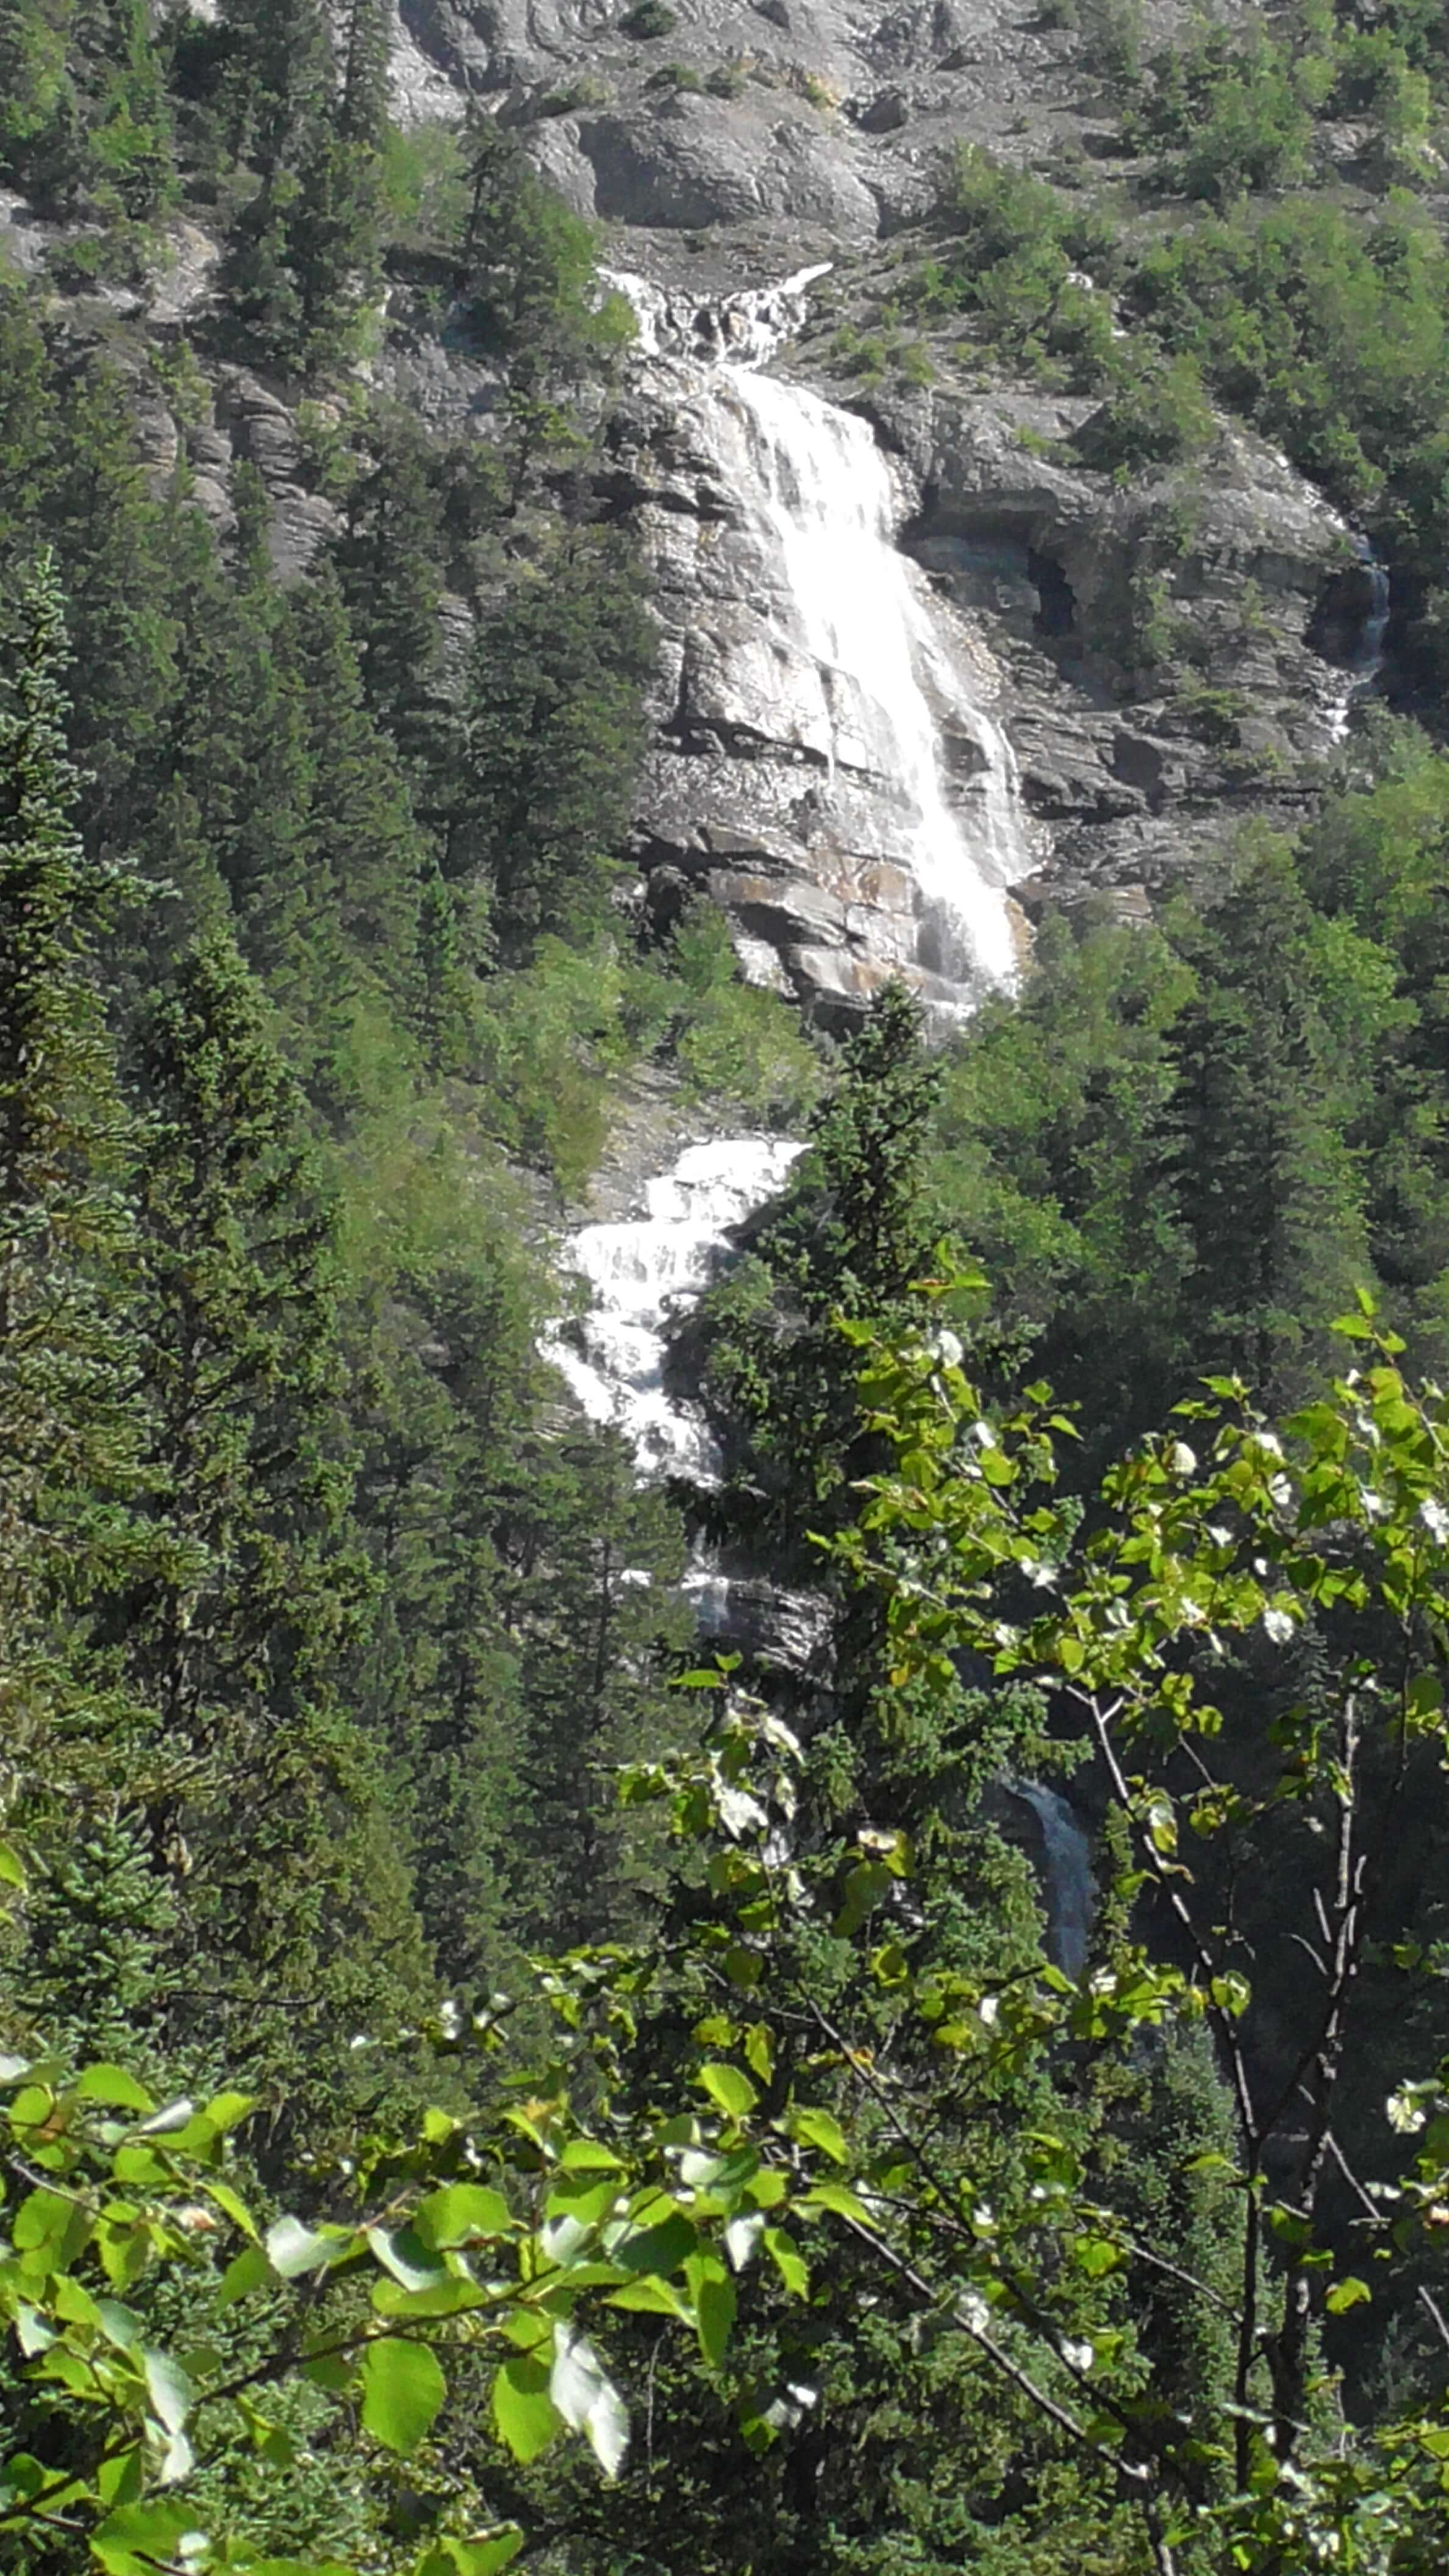 Unnamed water fall, Mount Robson Provincial Park, BC